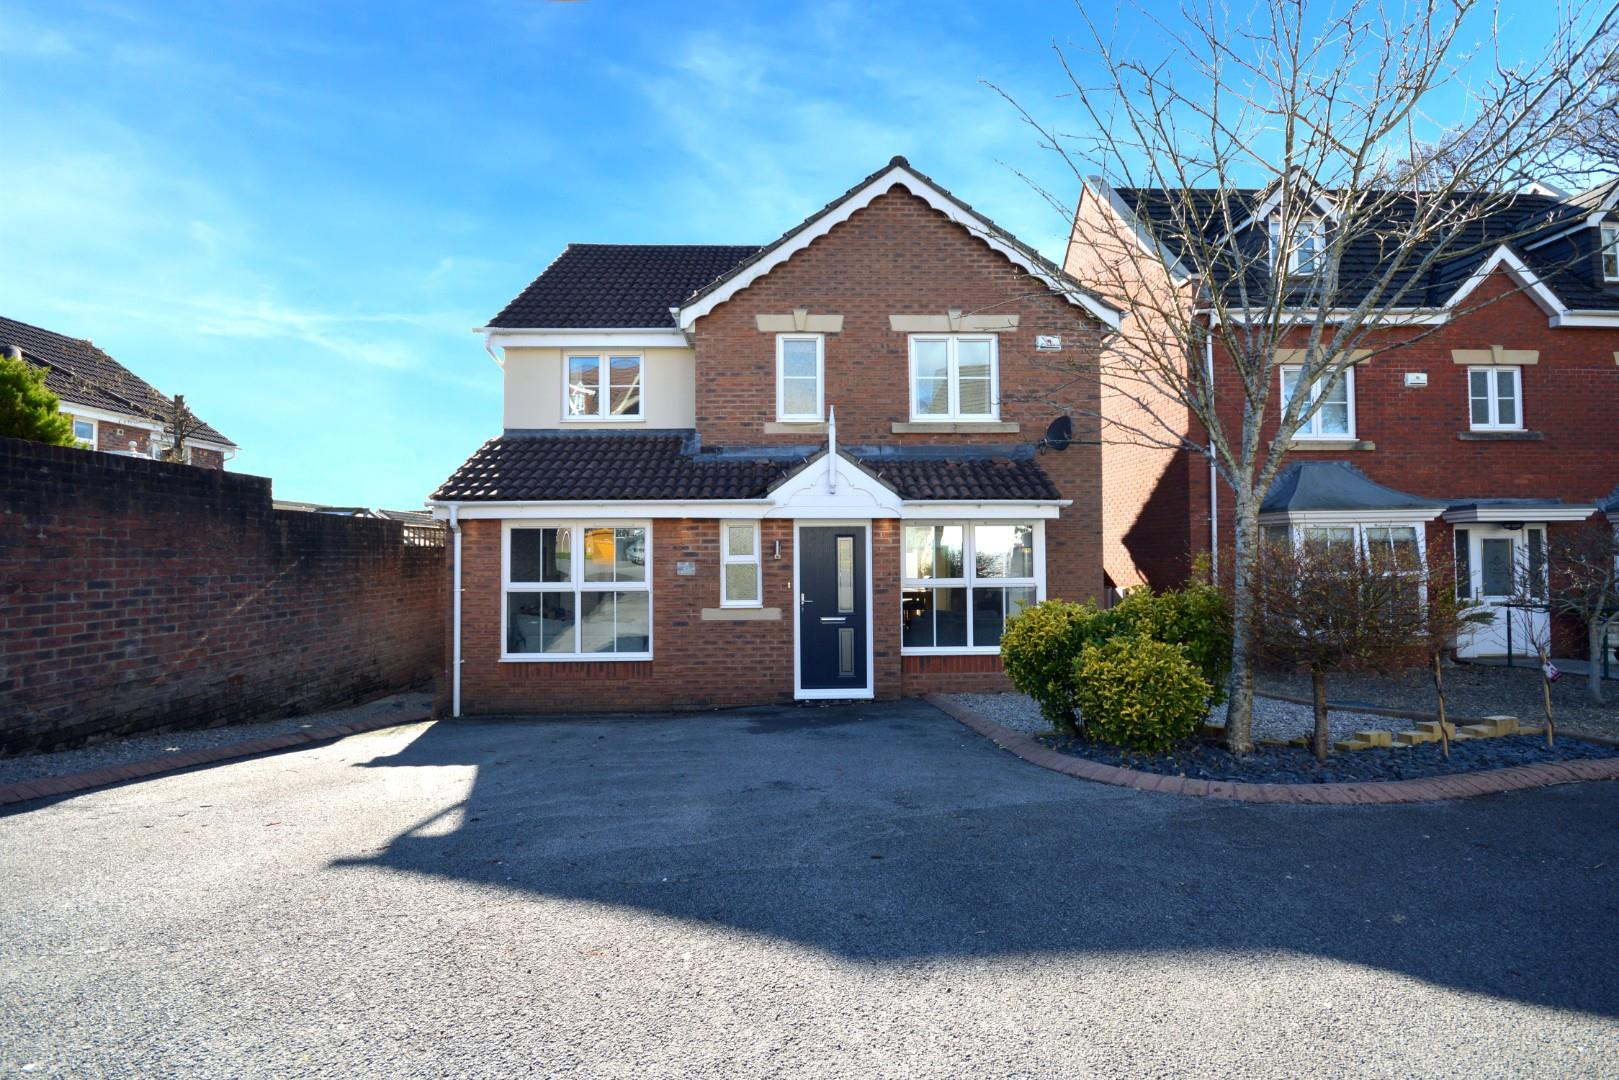 4 bed detached house for sale in Llewelyn Goch, Cardiff - Property Image 1